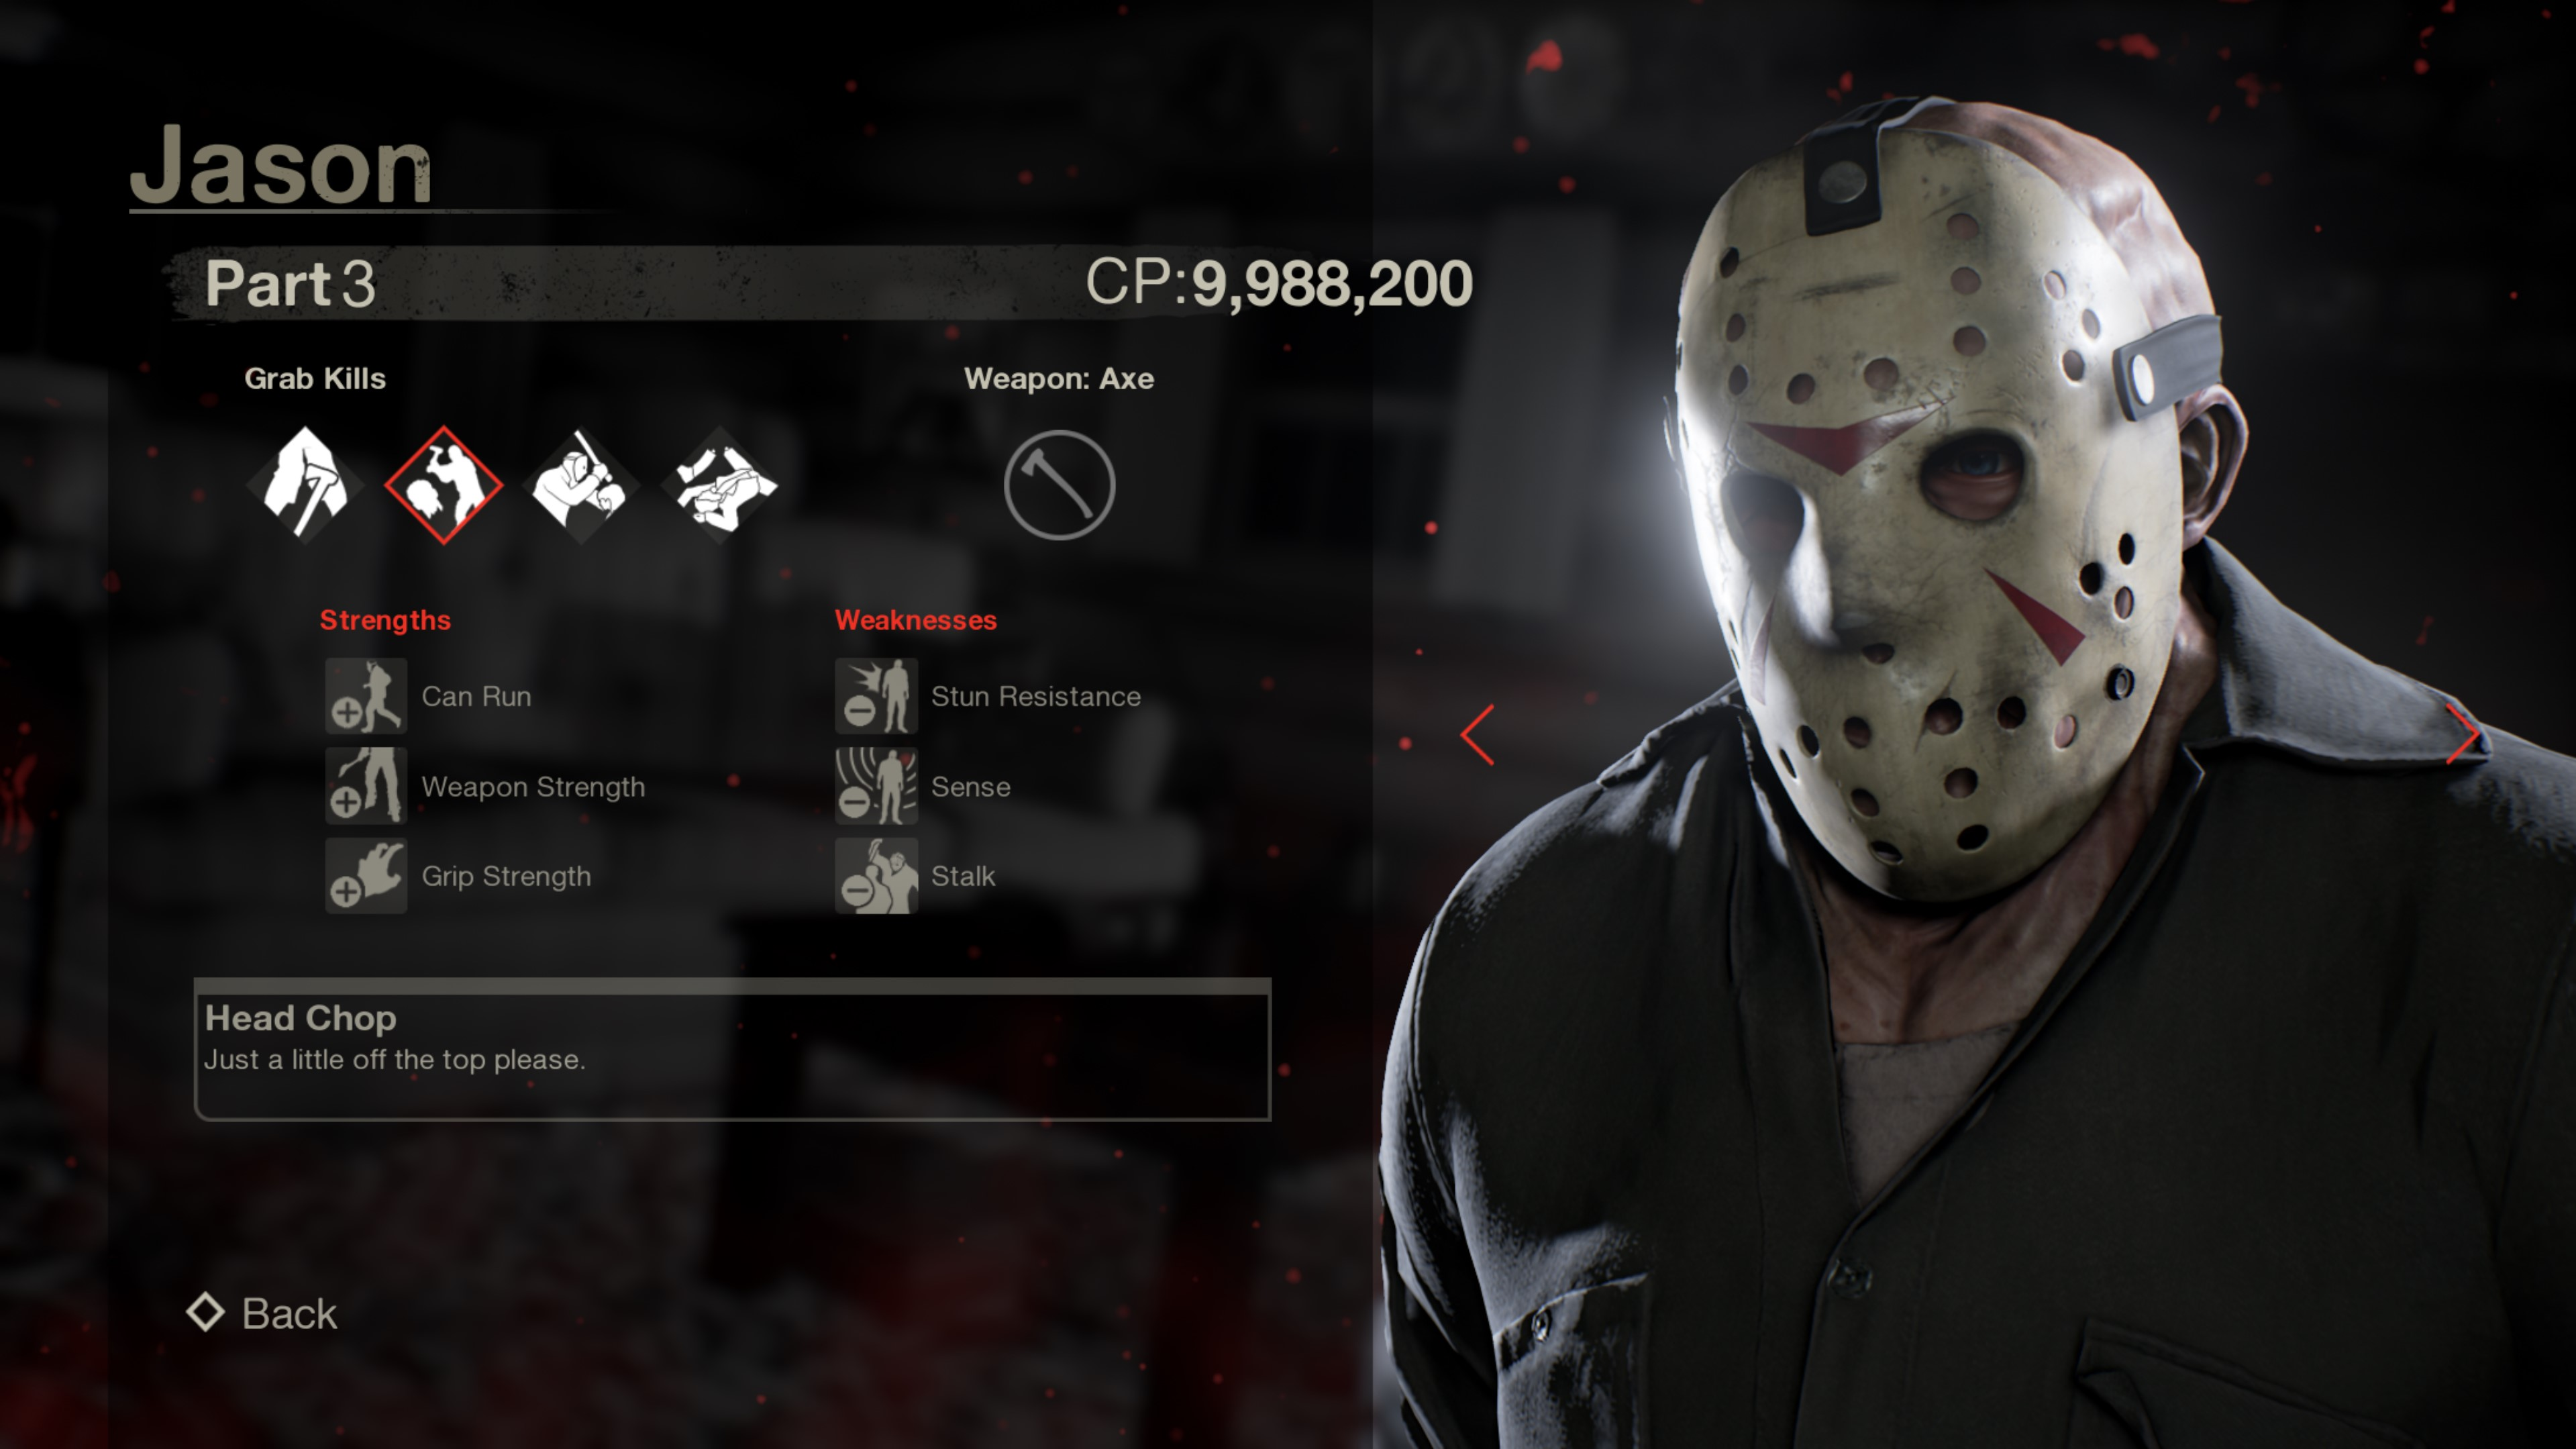 Jason from Friday the 13th part 3